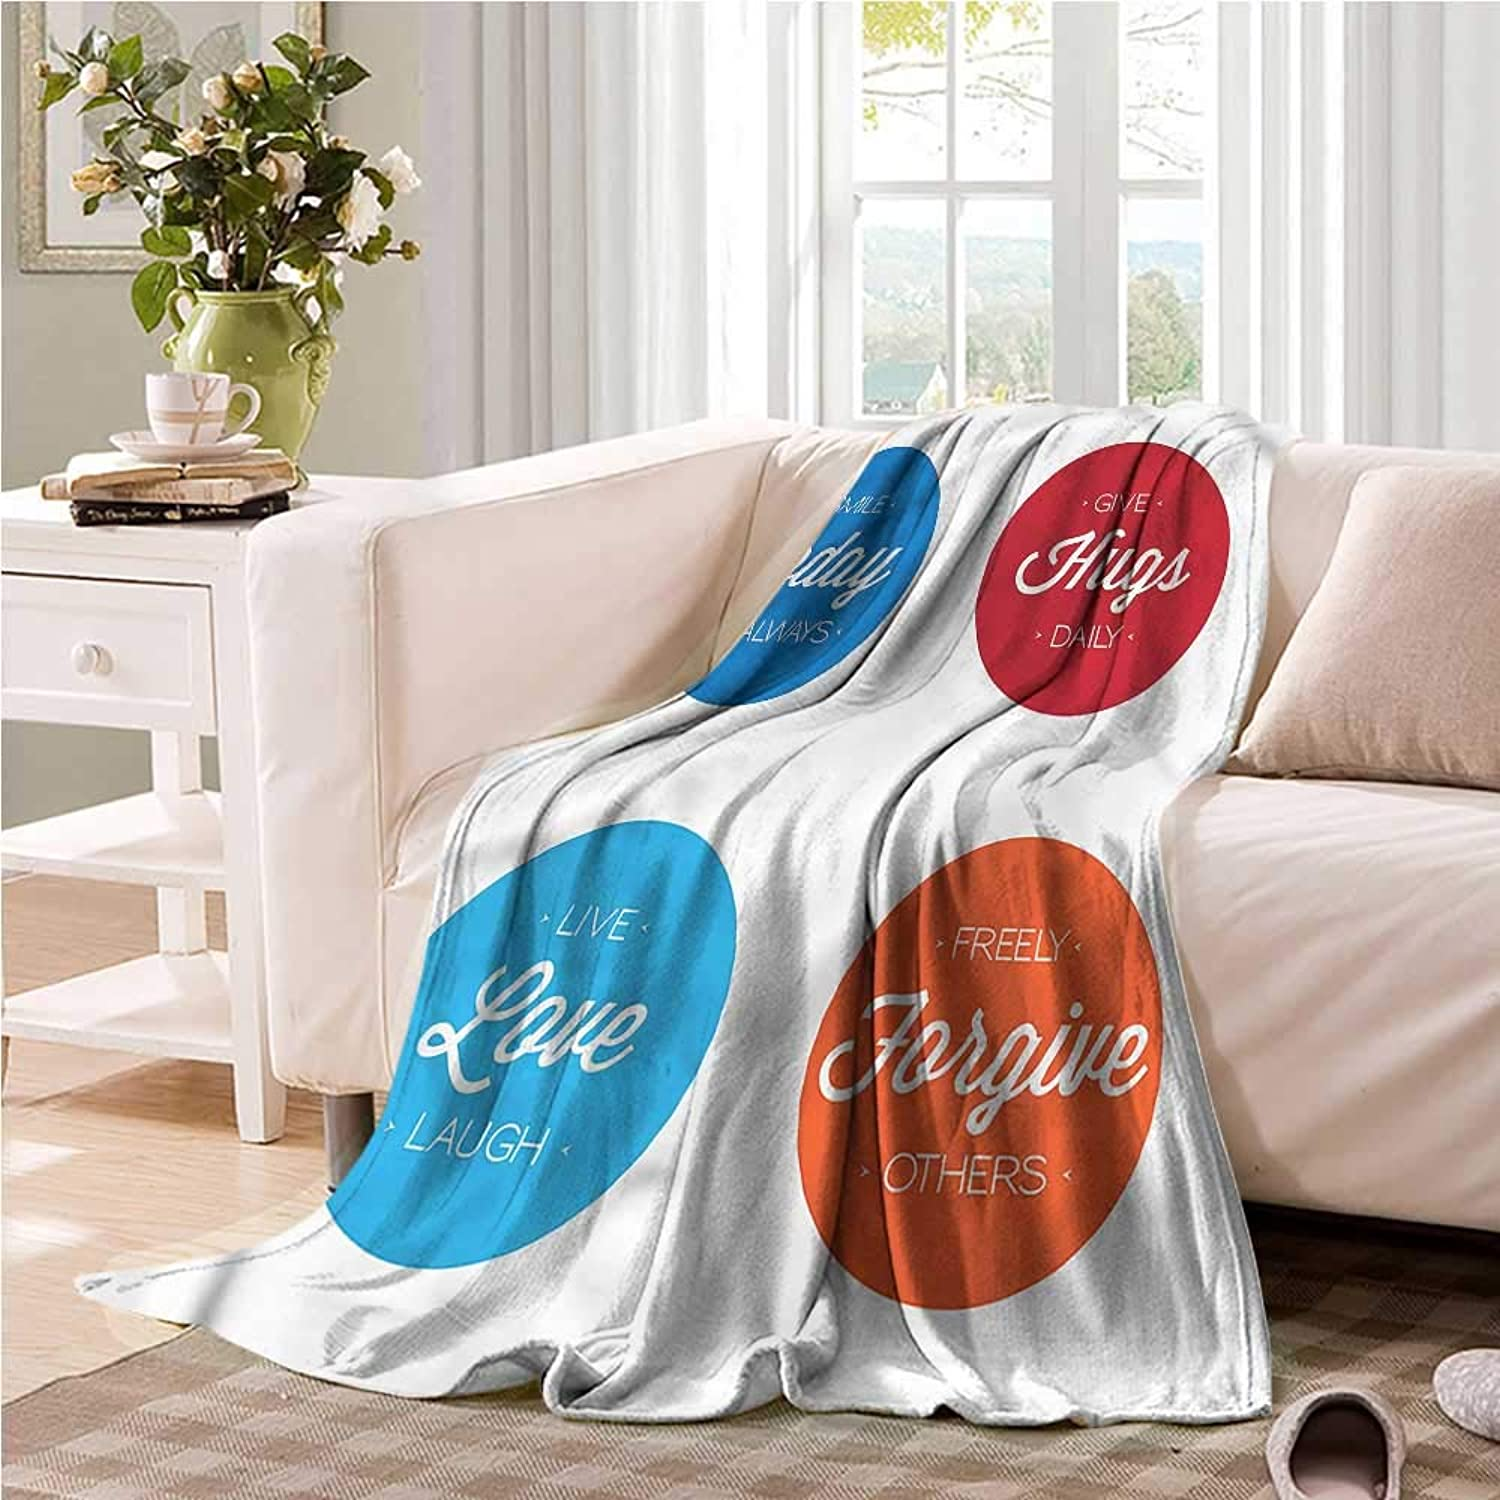 Oncegod Travel Blanket Quotes Positive Slogans on Life Camping Throw,Office wrap 60  W x 51  L